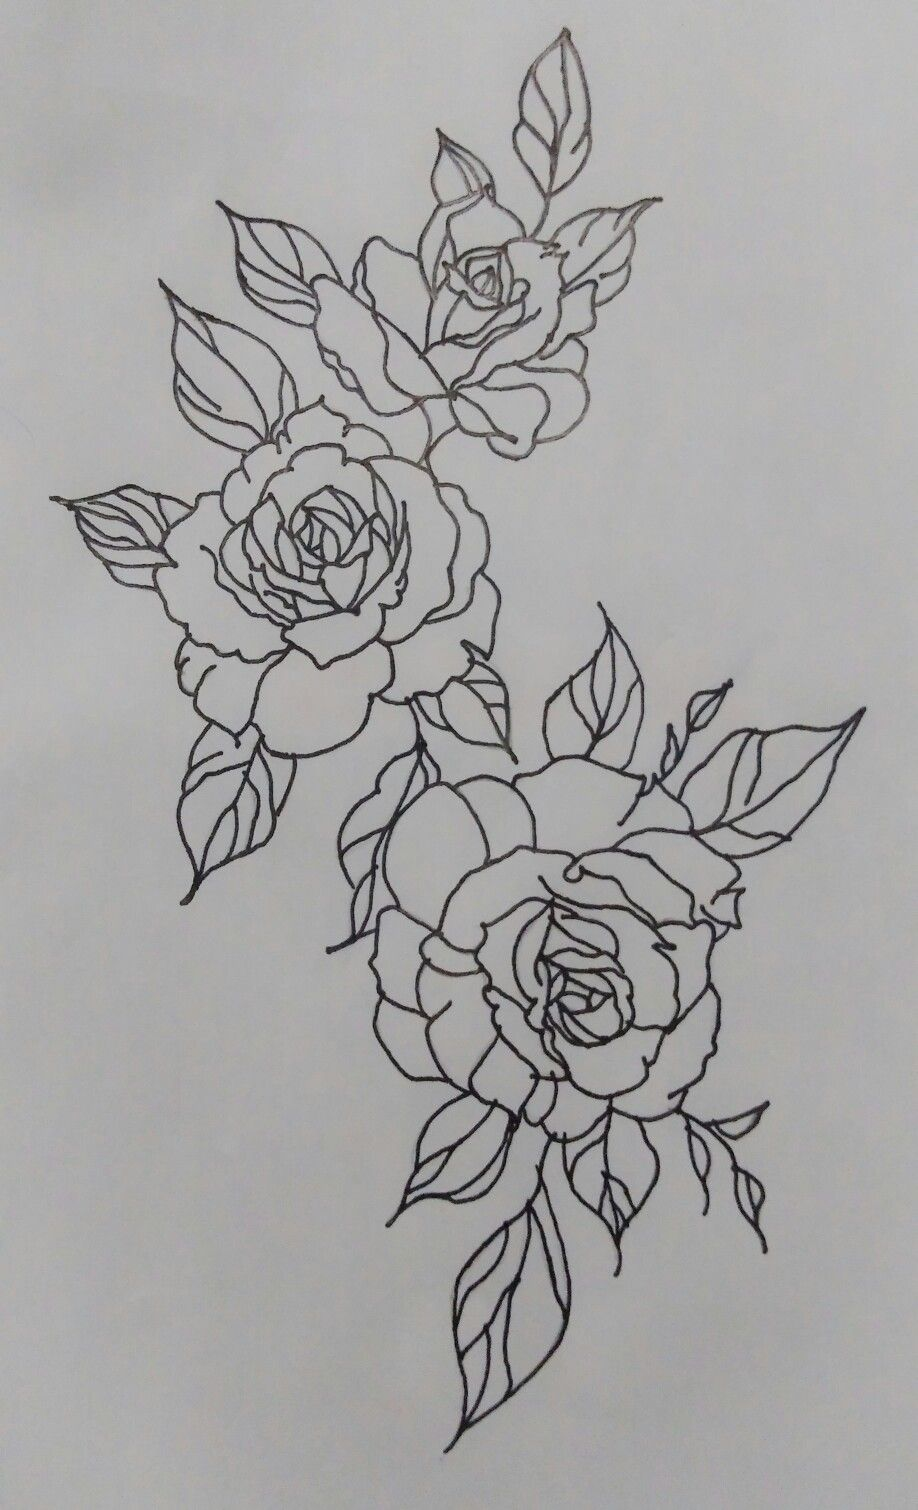 Desenhos Rosas Tattoo Flower Tattoos Inspirational Tattoos Hip